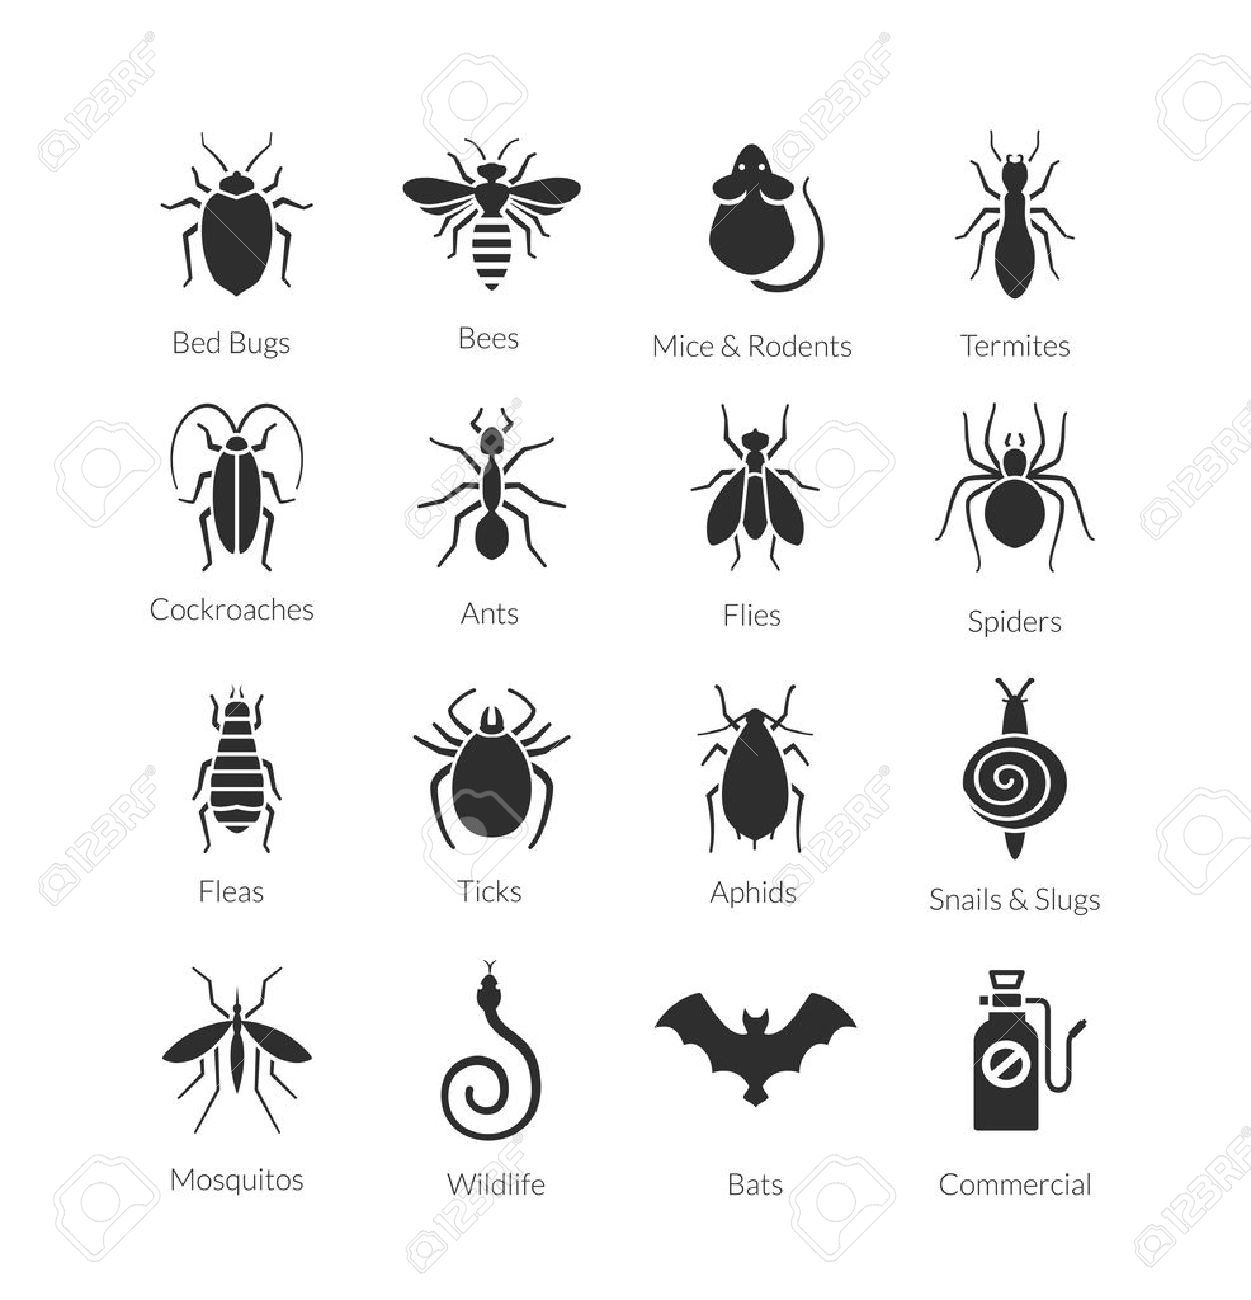 Vector Black And White Icon Set Of Different Insects Like Flies